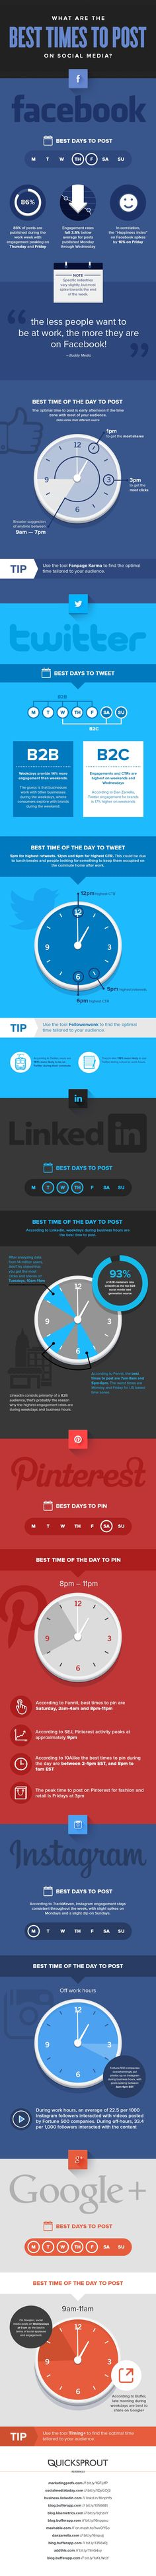 BestTime_Infographic